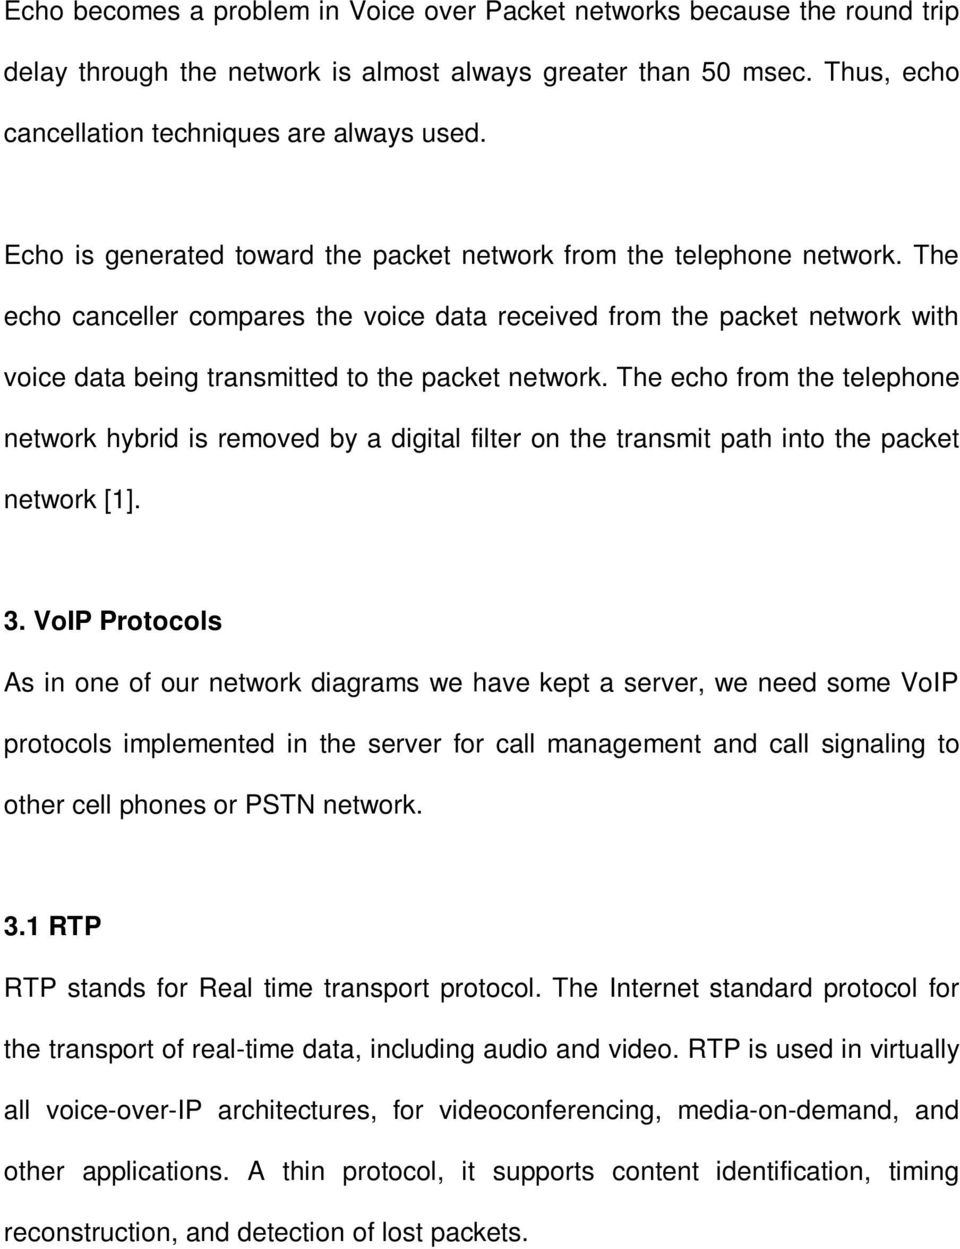 The echo canceller compares the voice data received from the packet network with voice data being transmitted to the packet network.